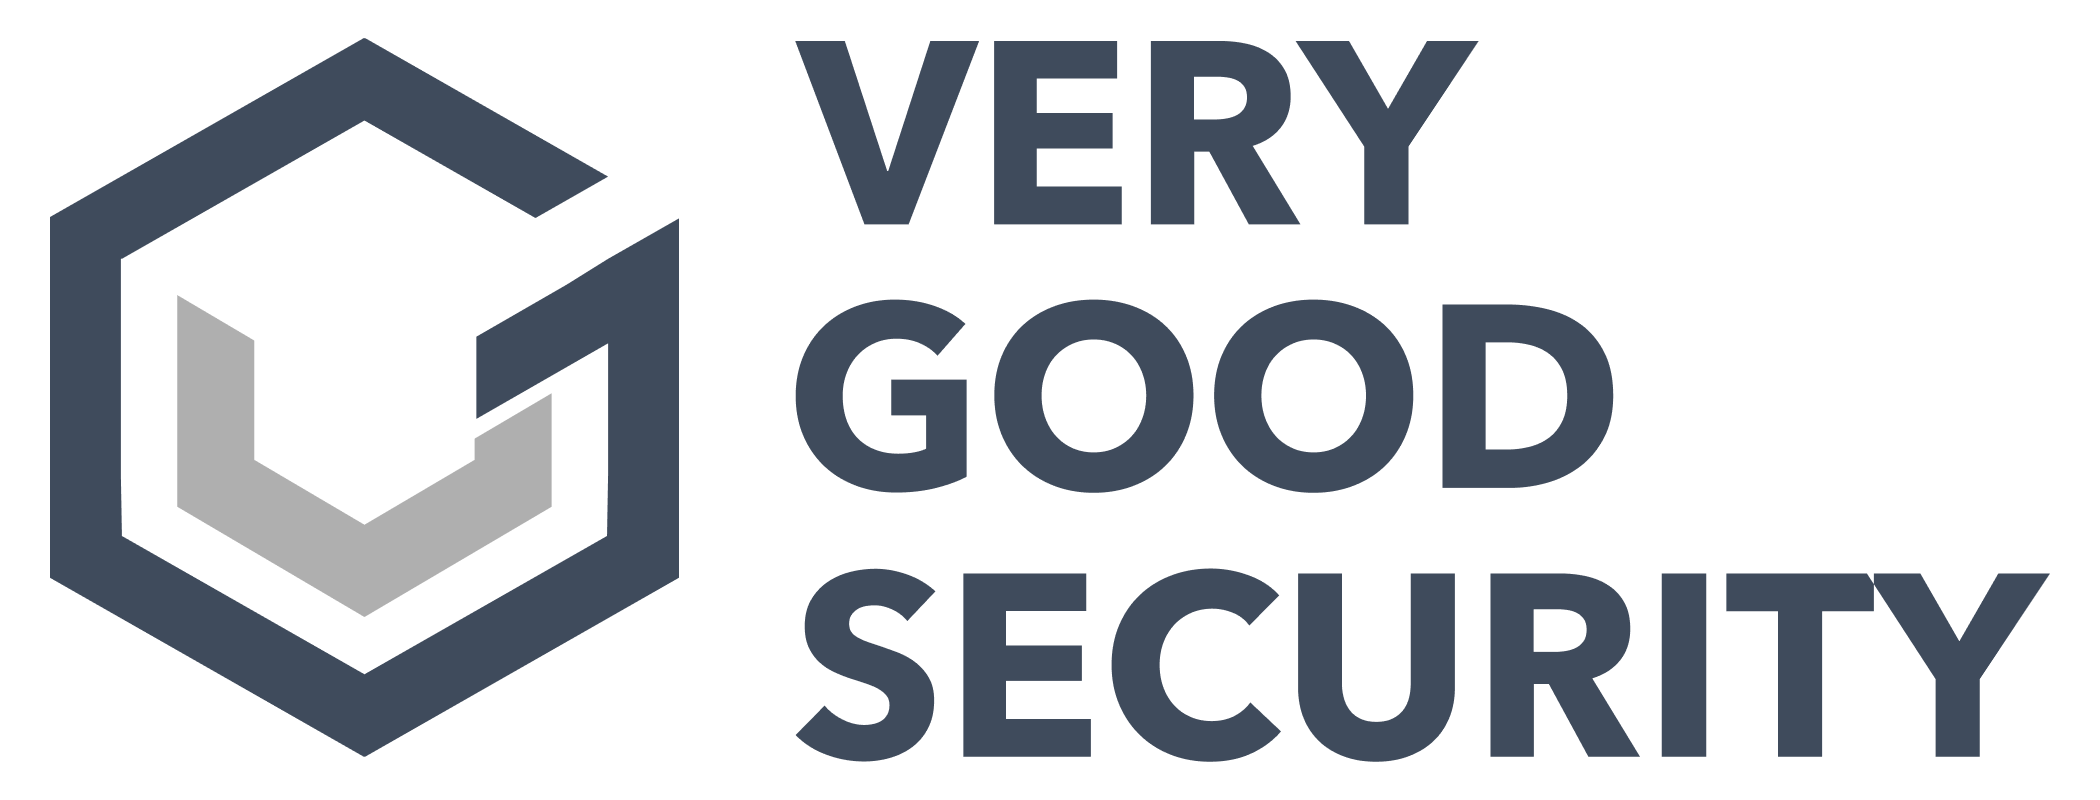 Very Good Security - VGS